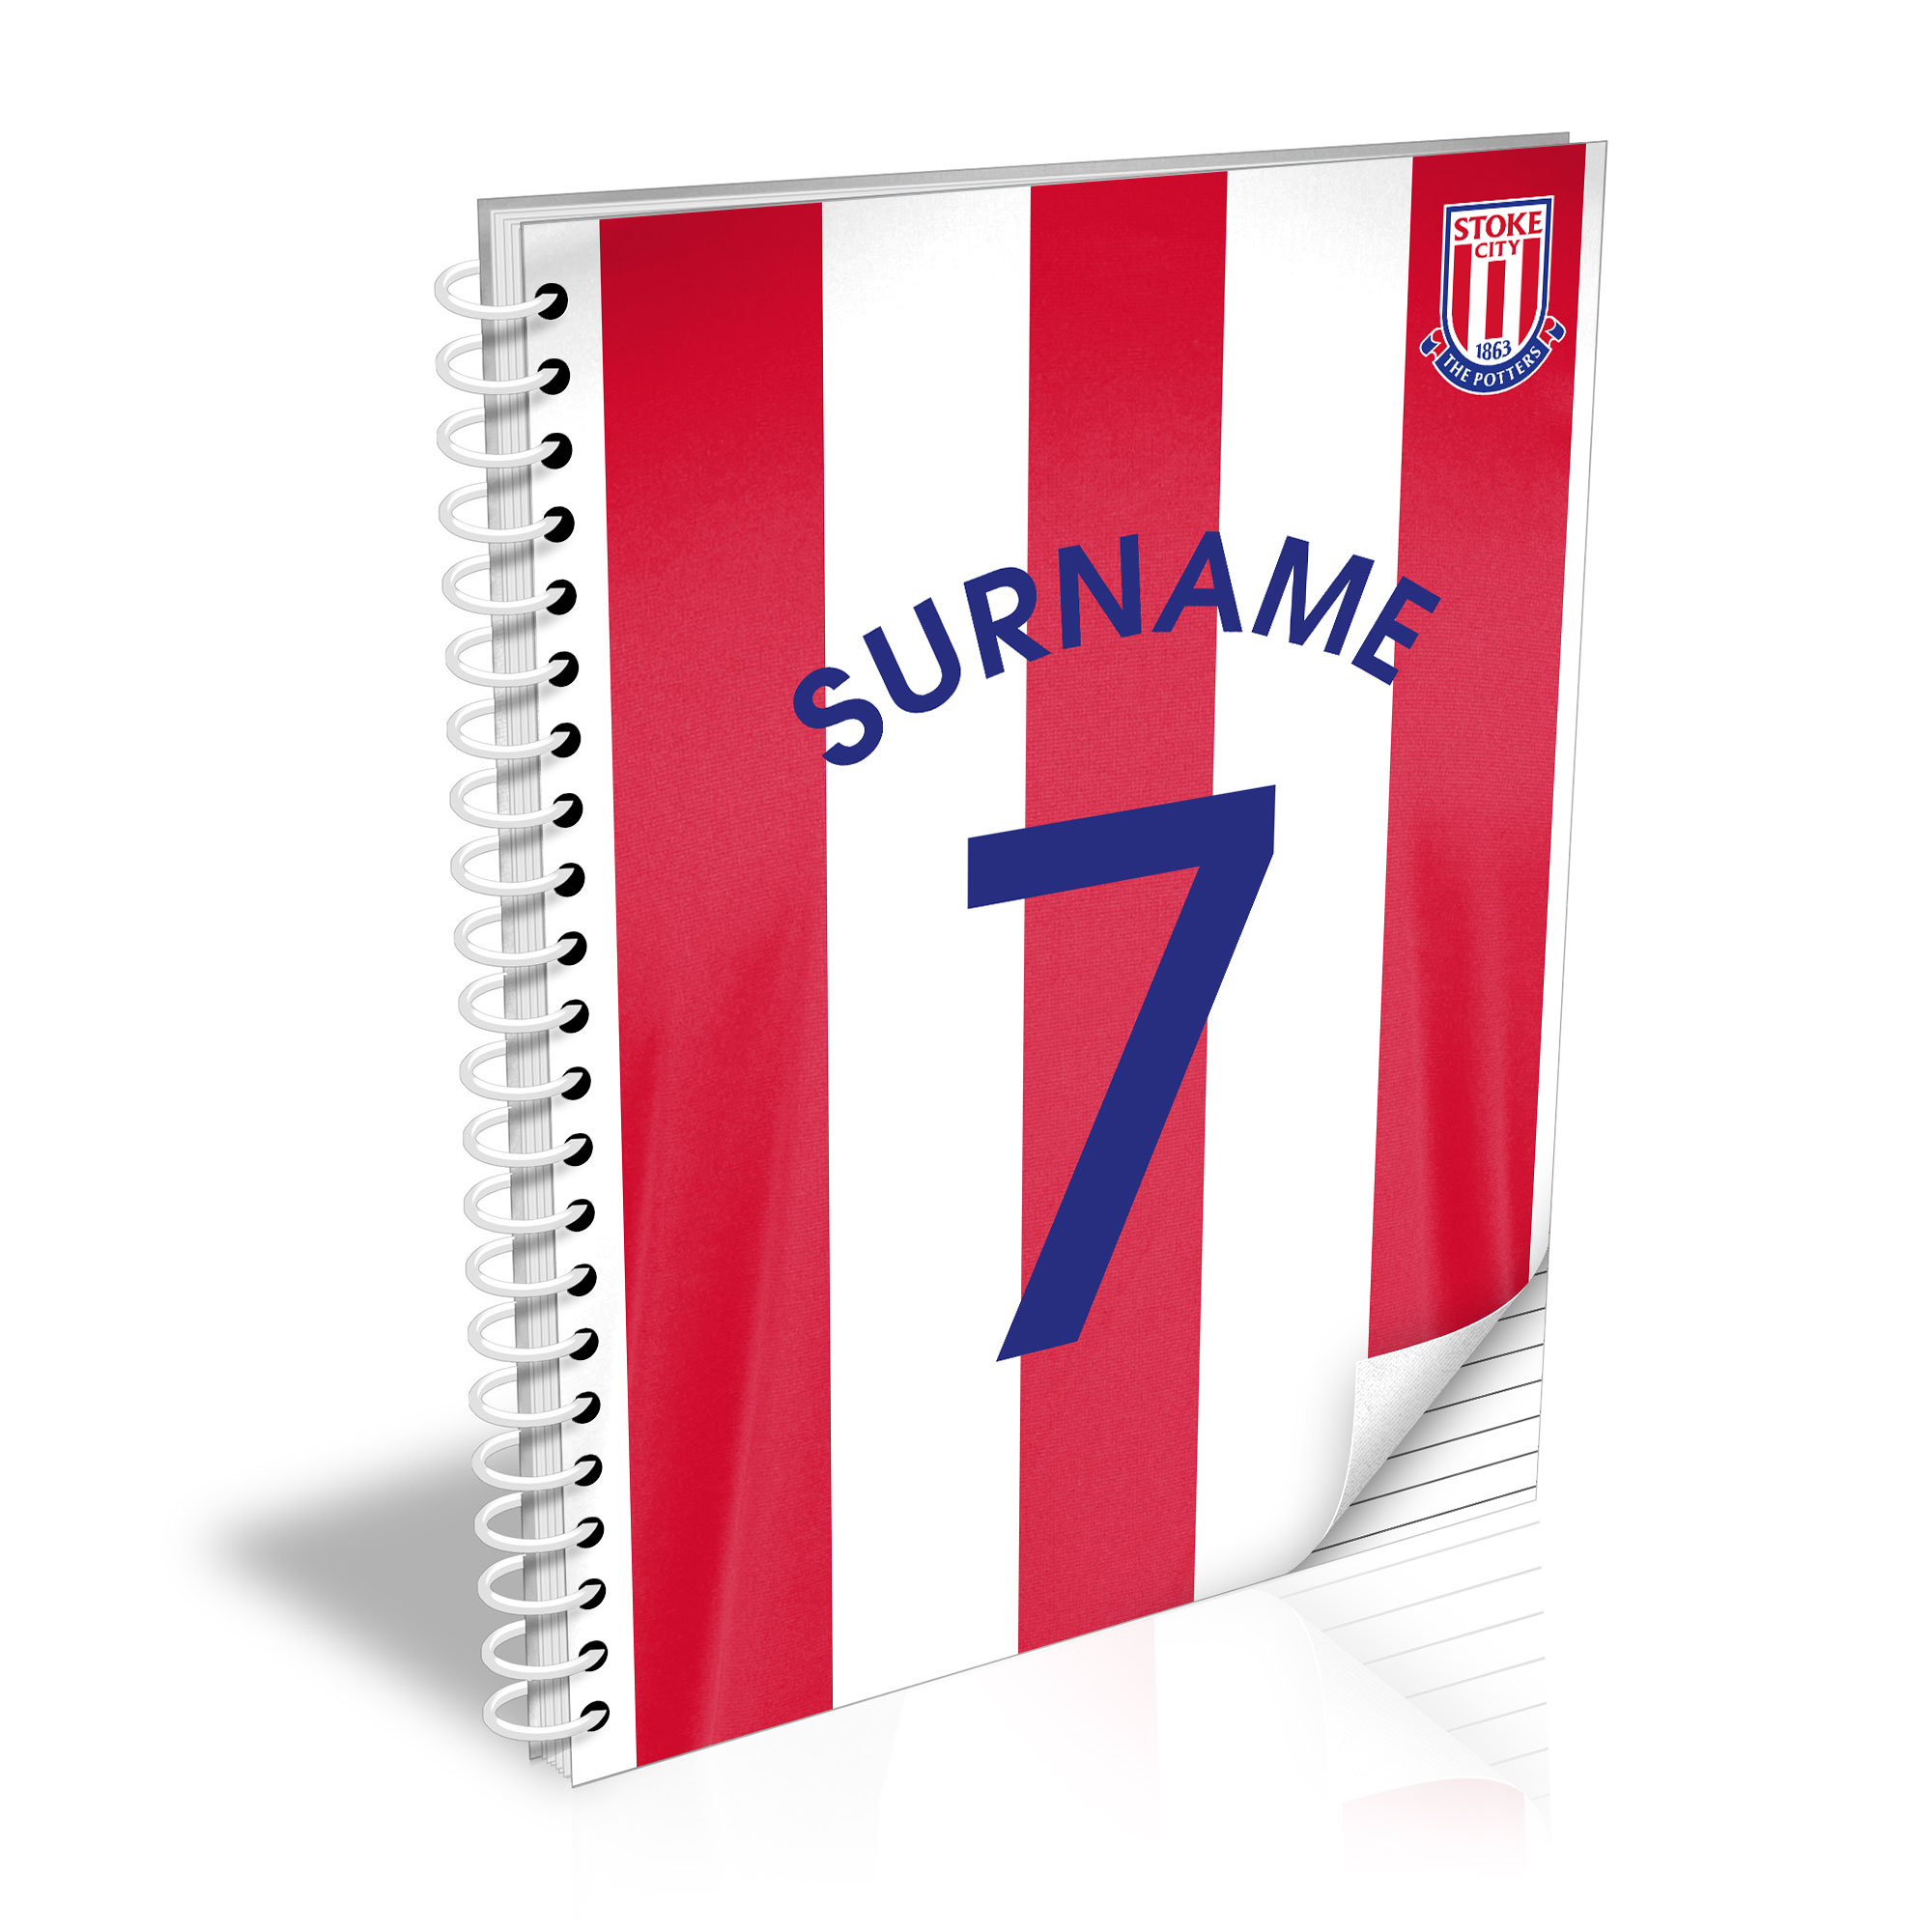 Stoke City FC Shirt Notebook